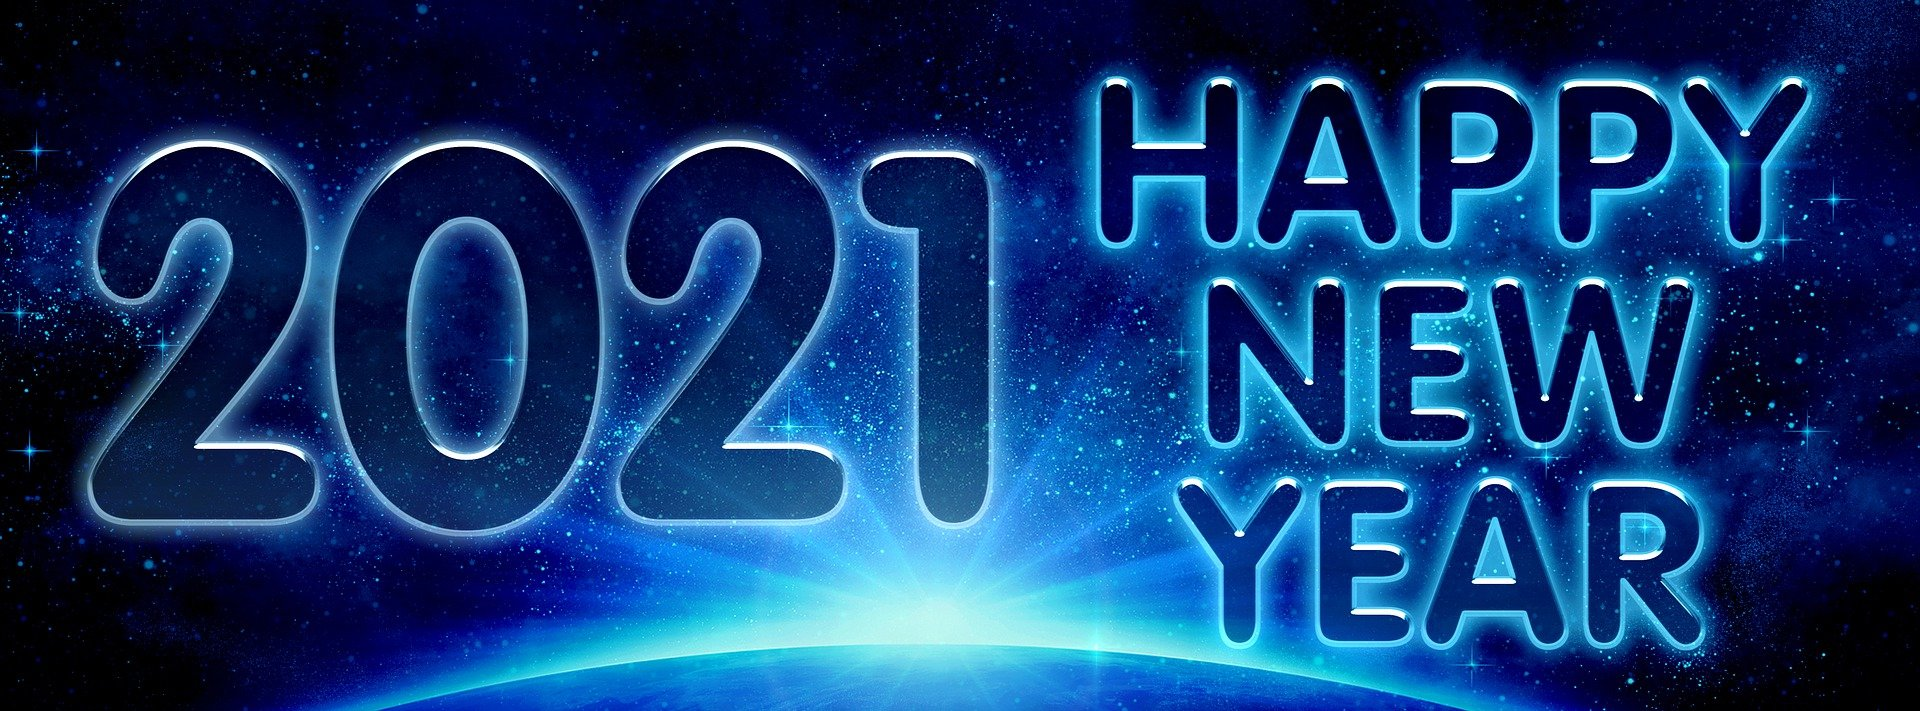 new year 2021 1920x711 - Free image bank